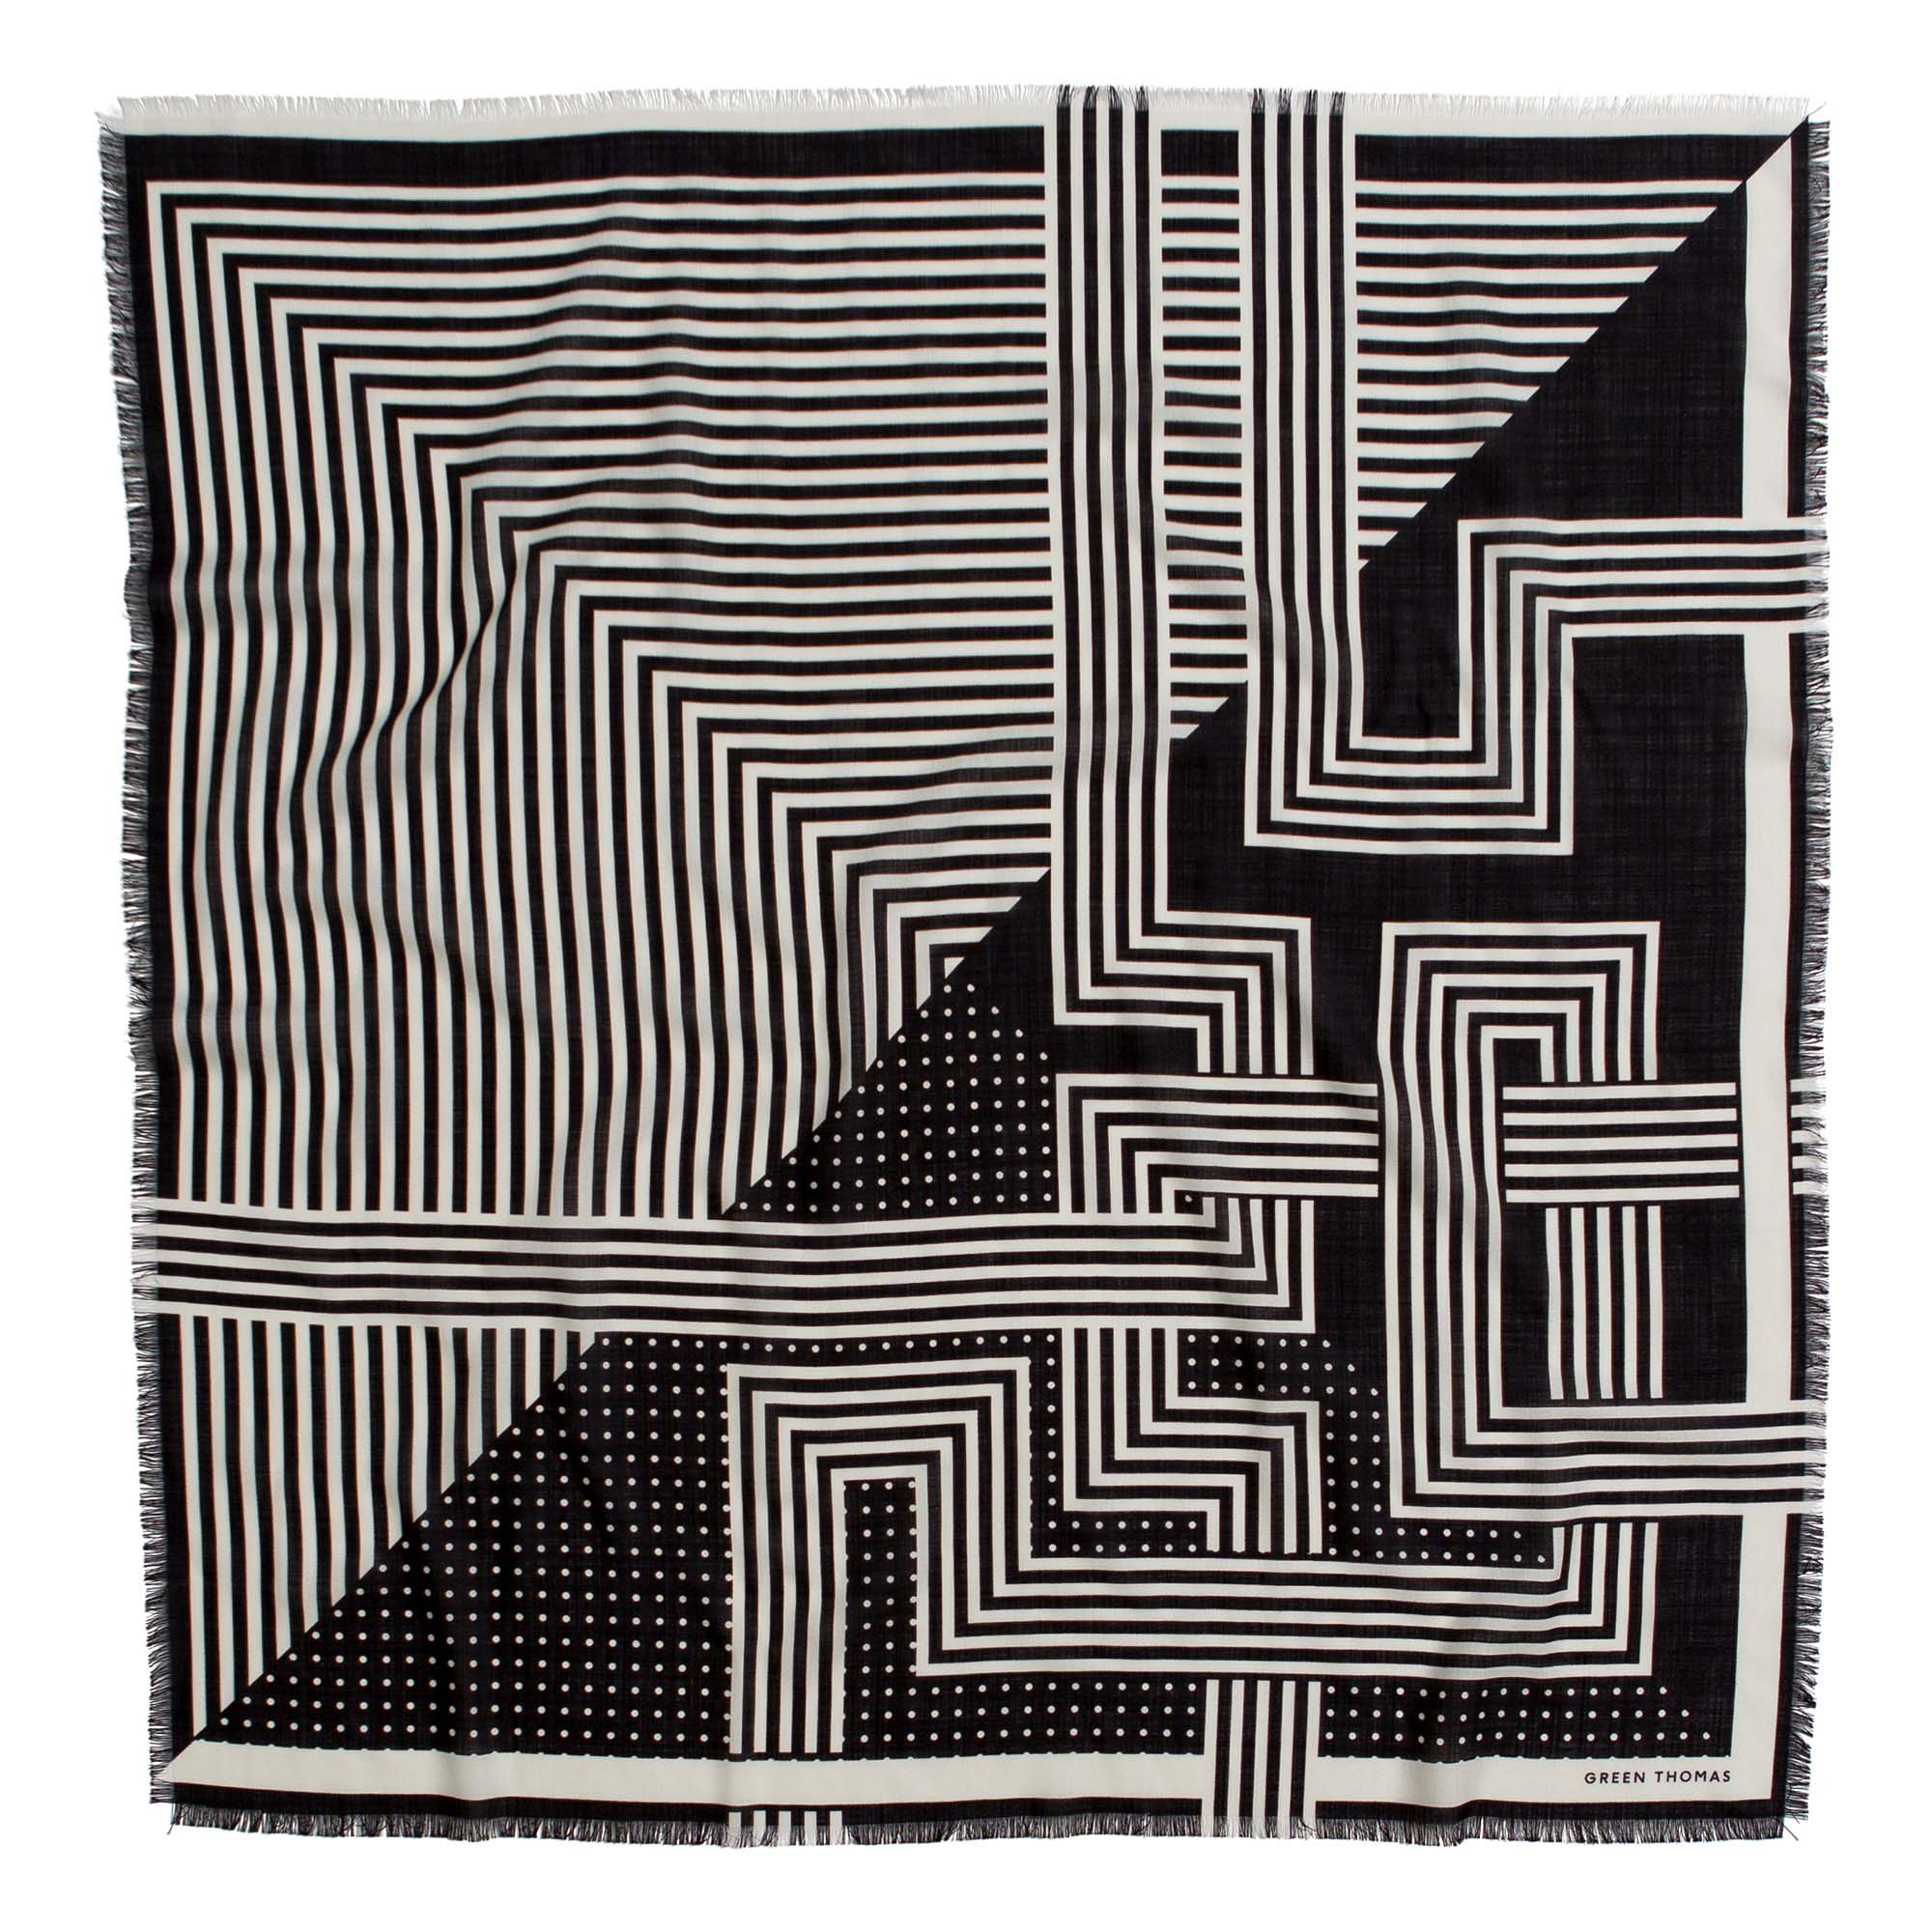 DECO WOOL SILK SQUARE BLACK WHITE - GREEN THOMAS